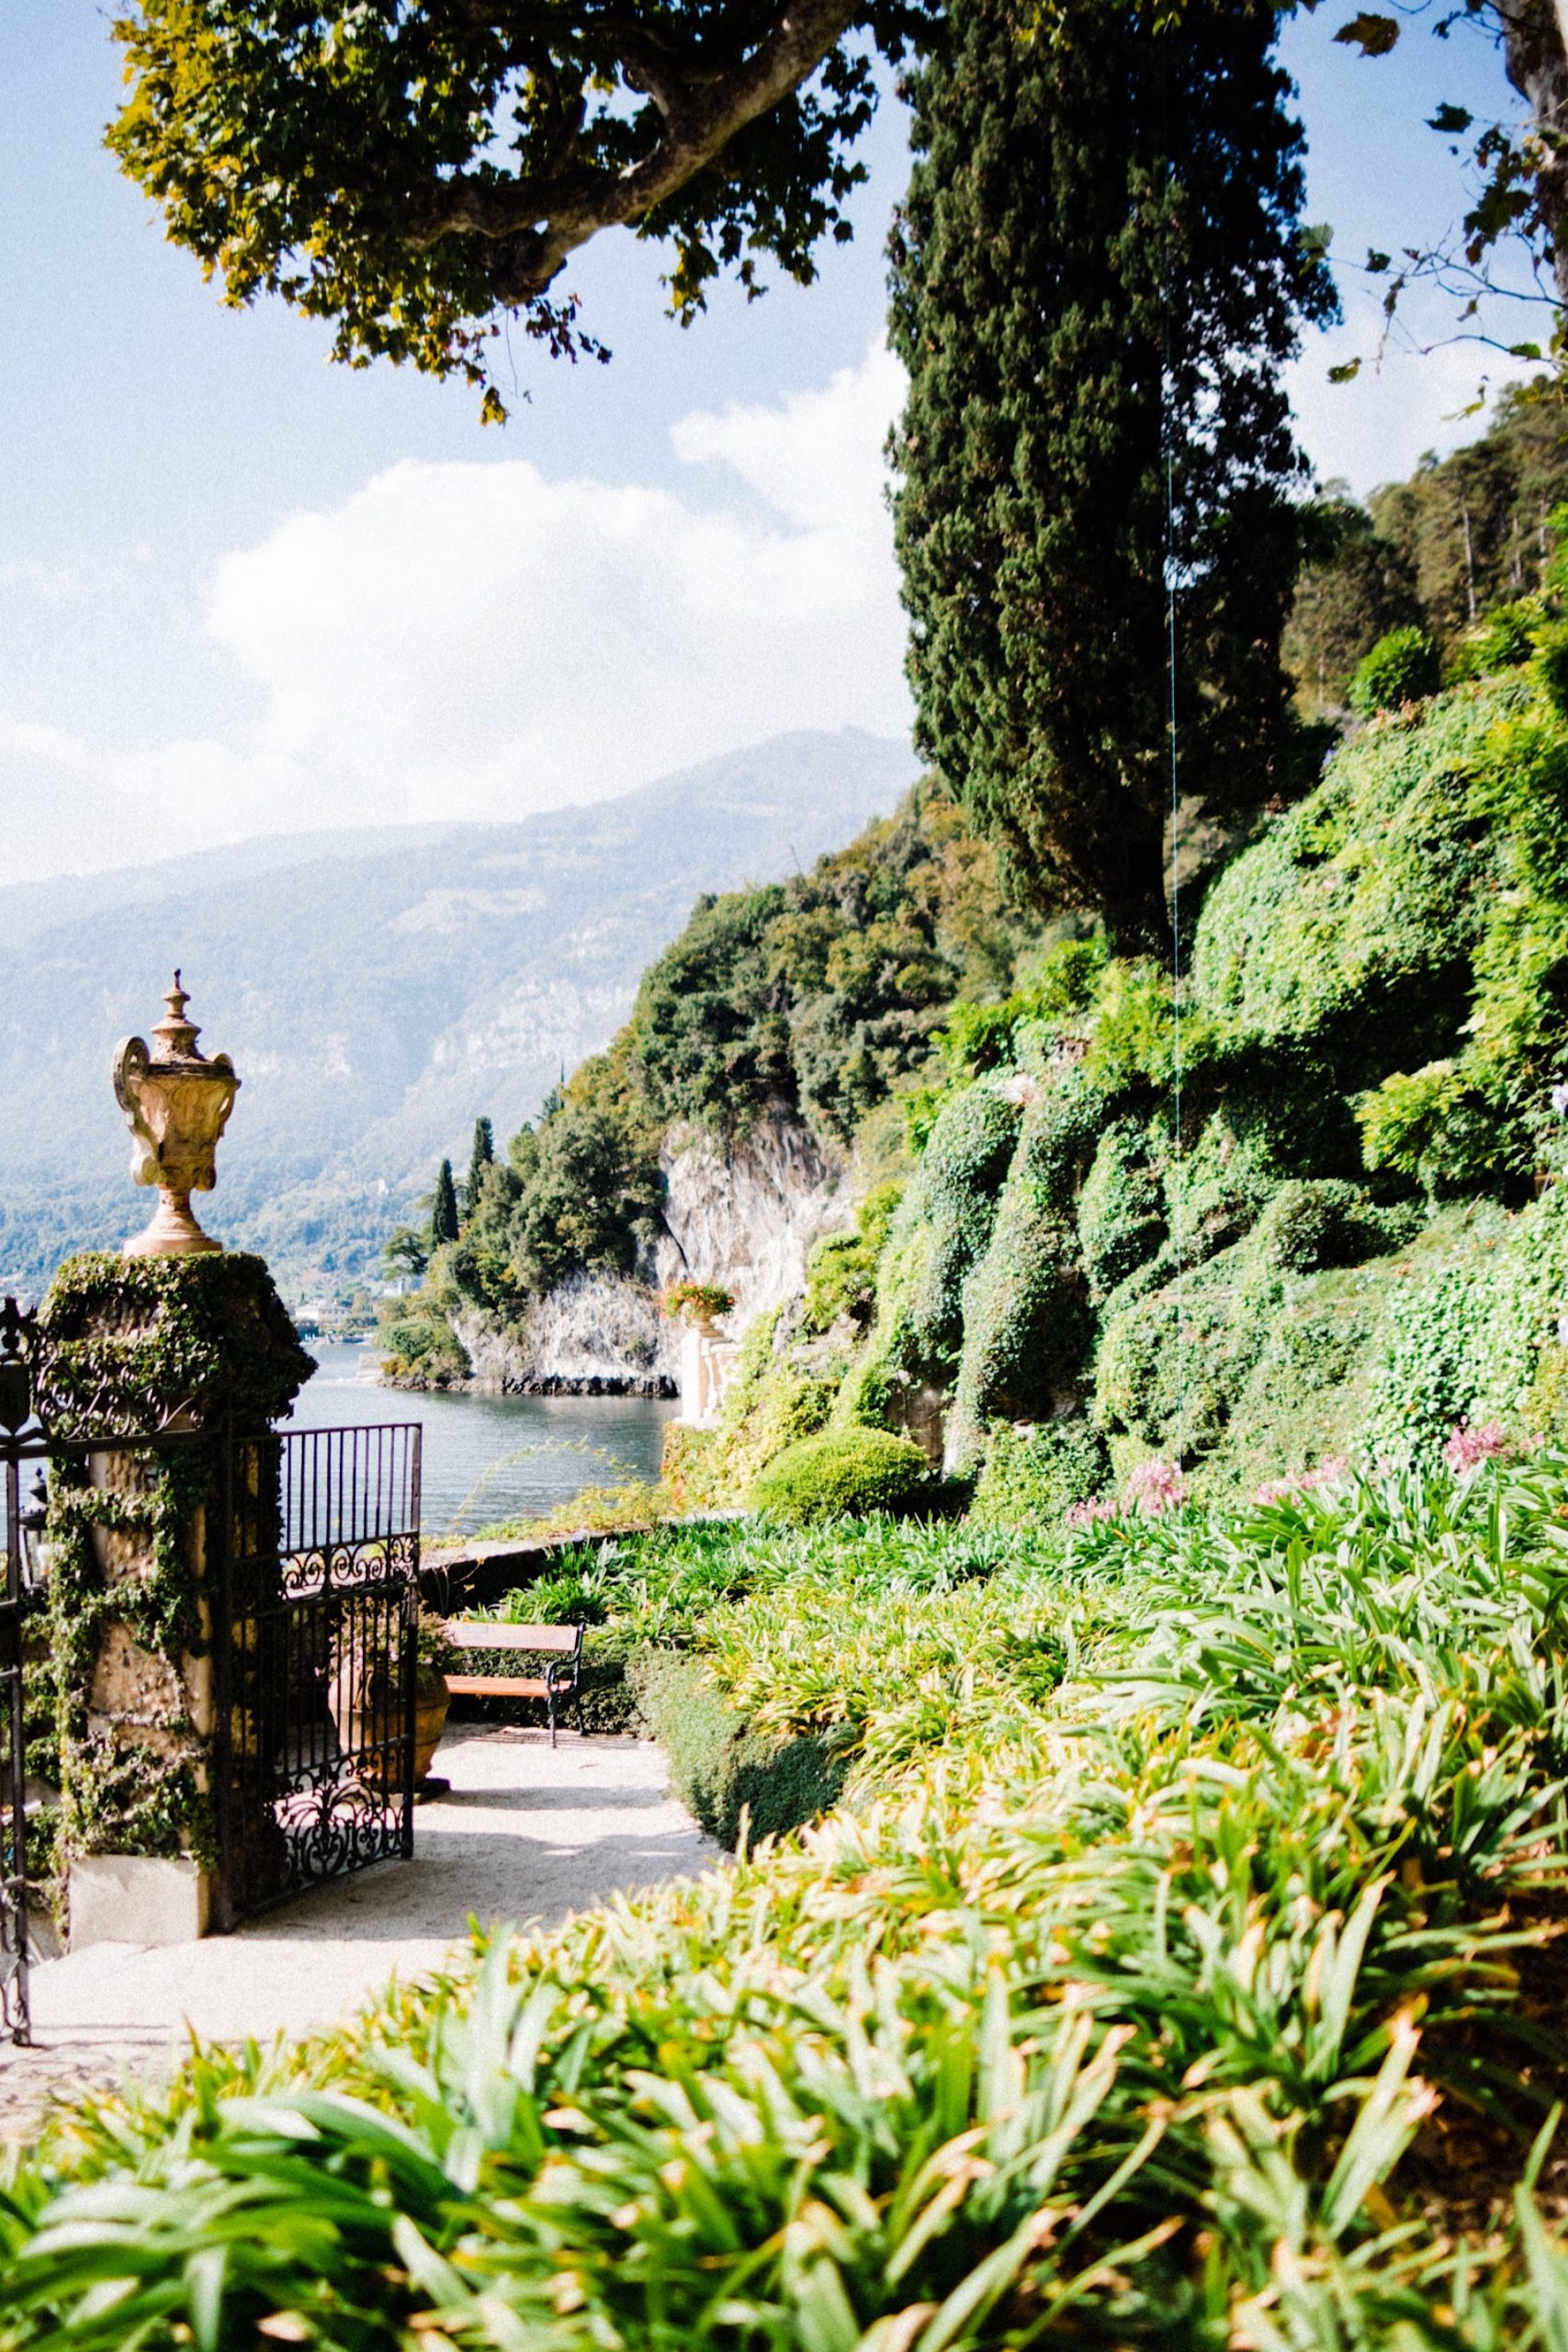 A portrait image of the gardens at Villa Balbianello, looking out over the gardens just in front of the main gates, and a view out over Lake Como.